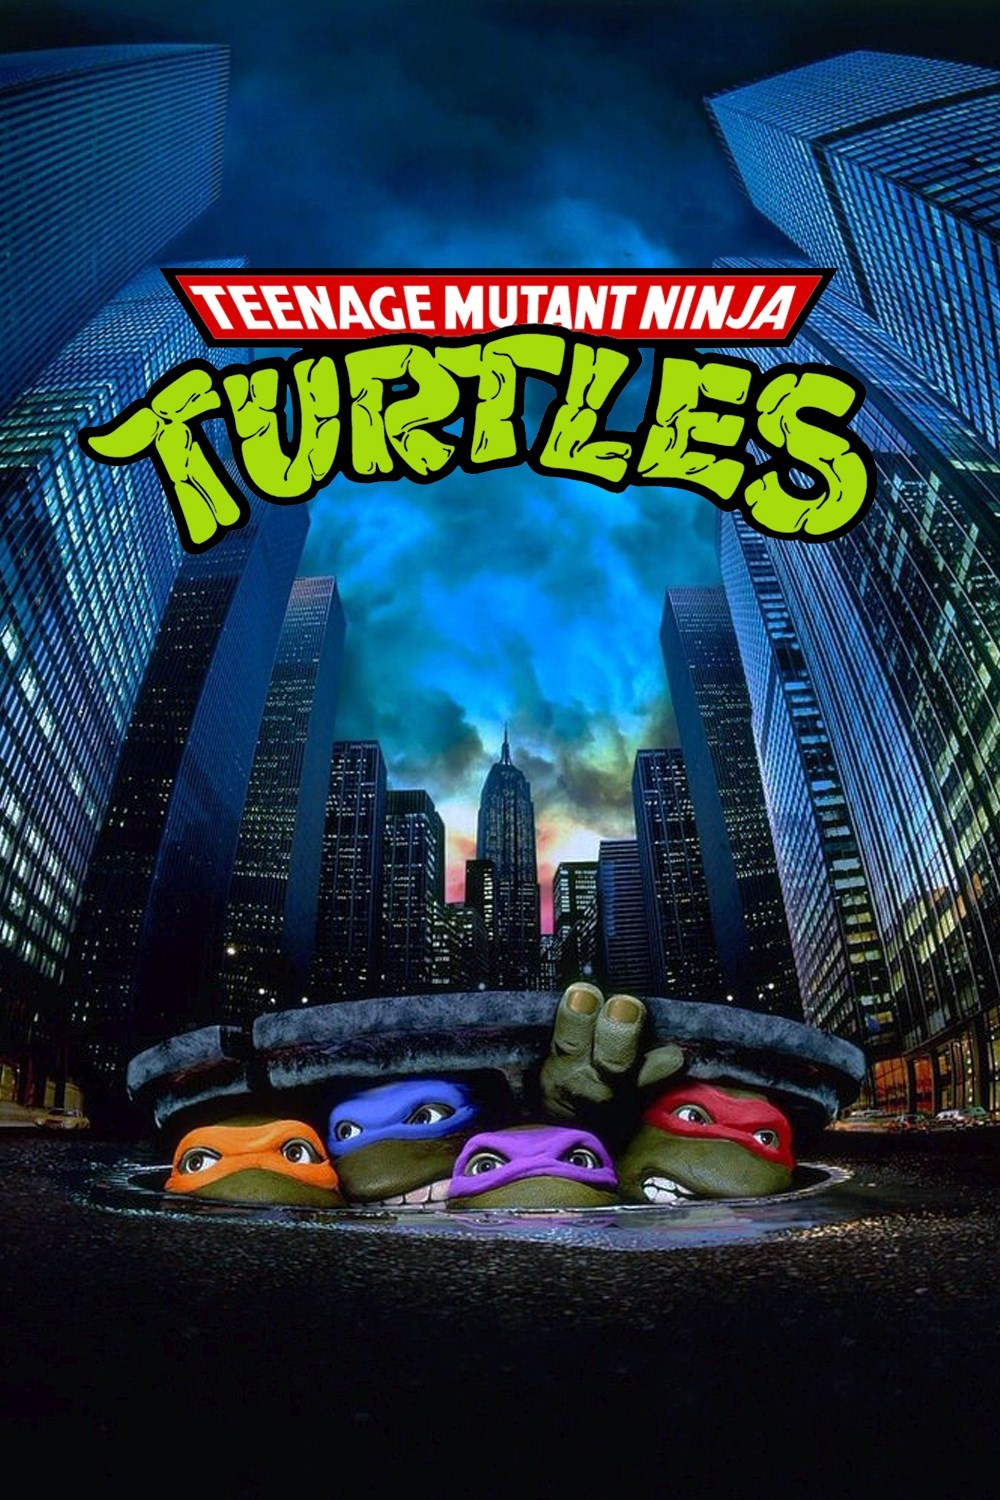 teenage-mutant-ninja-turtles-the-movie-1990.30980.jpg